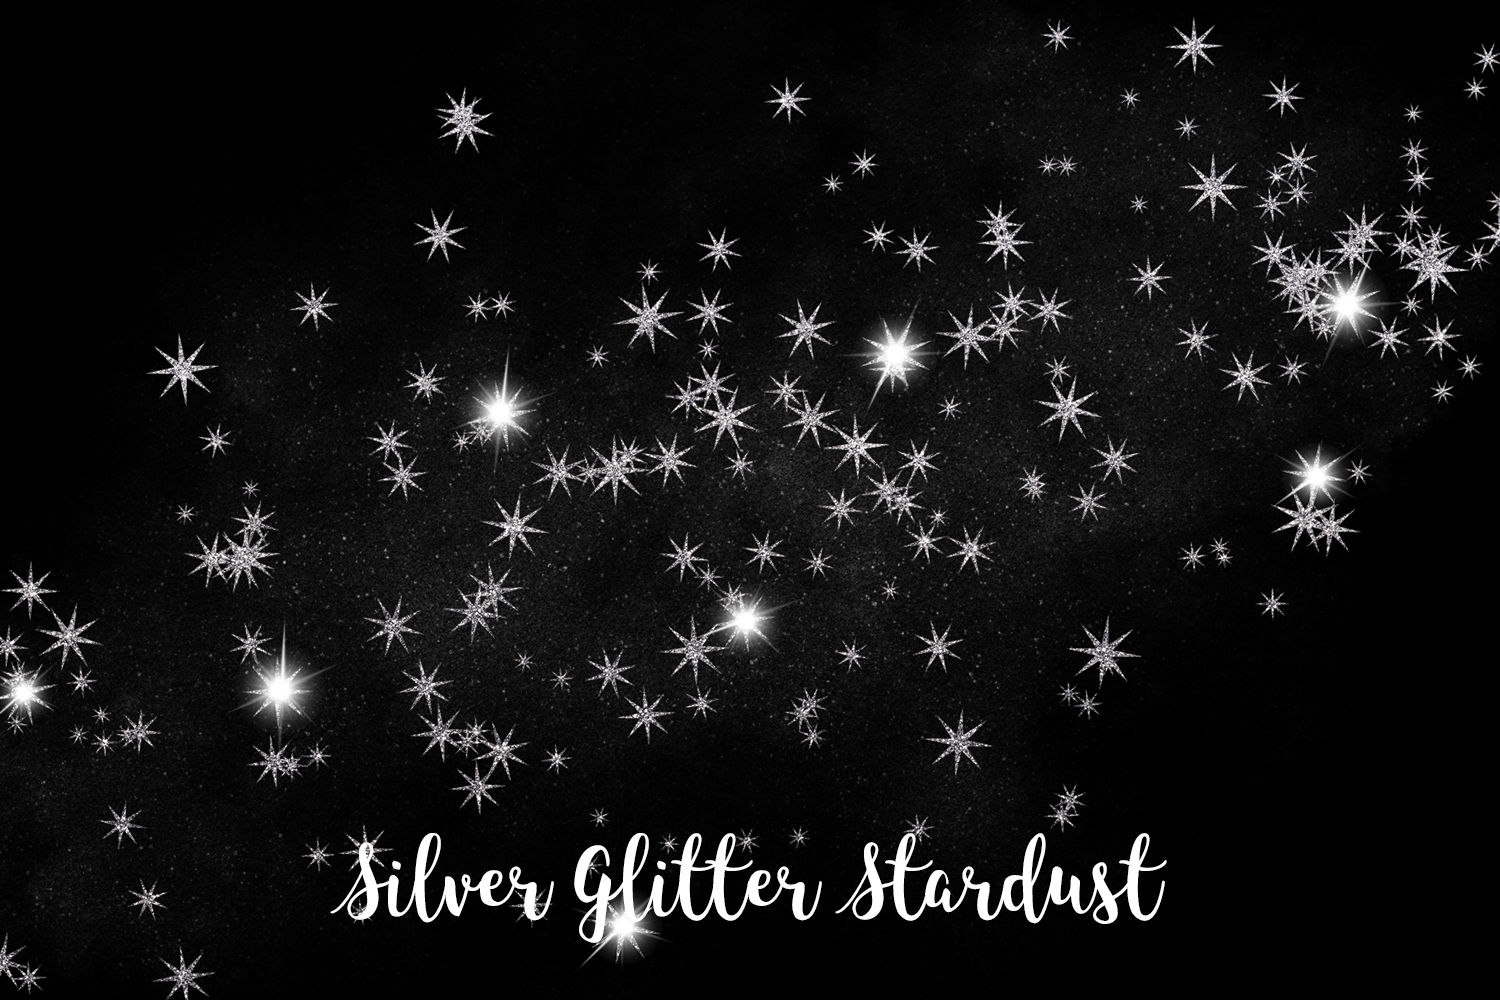 Silver Glitter Stardust, Transparent PNG example image 6